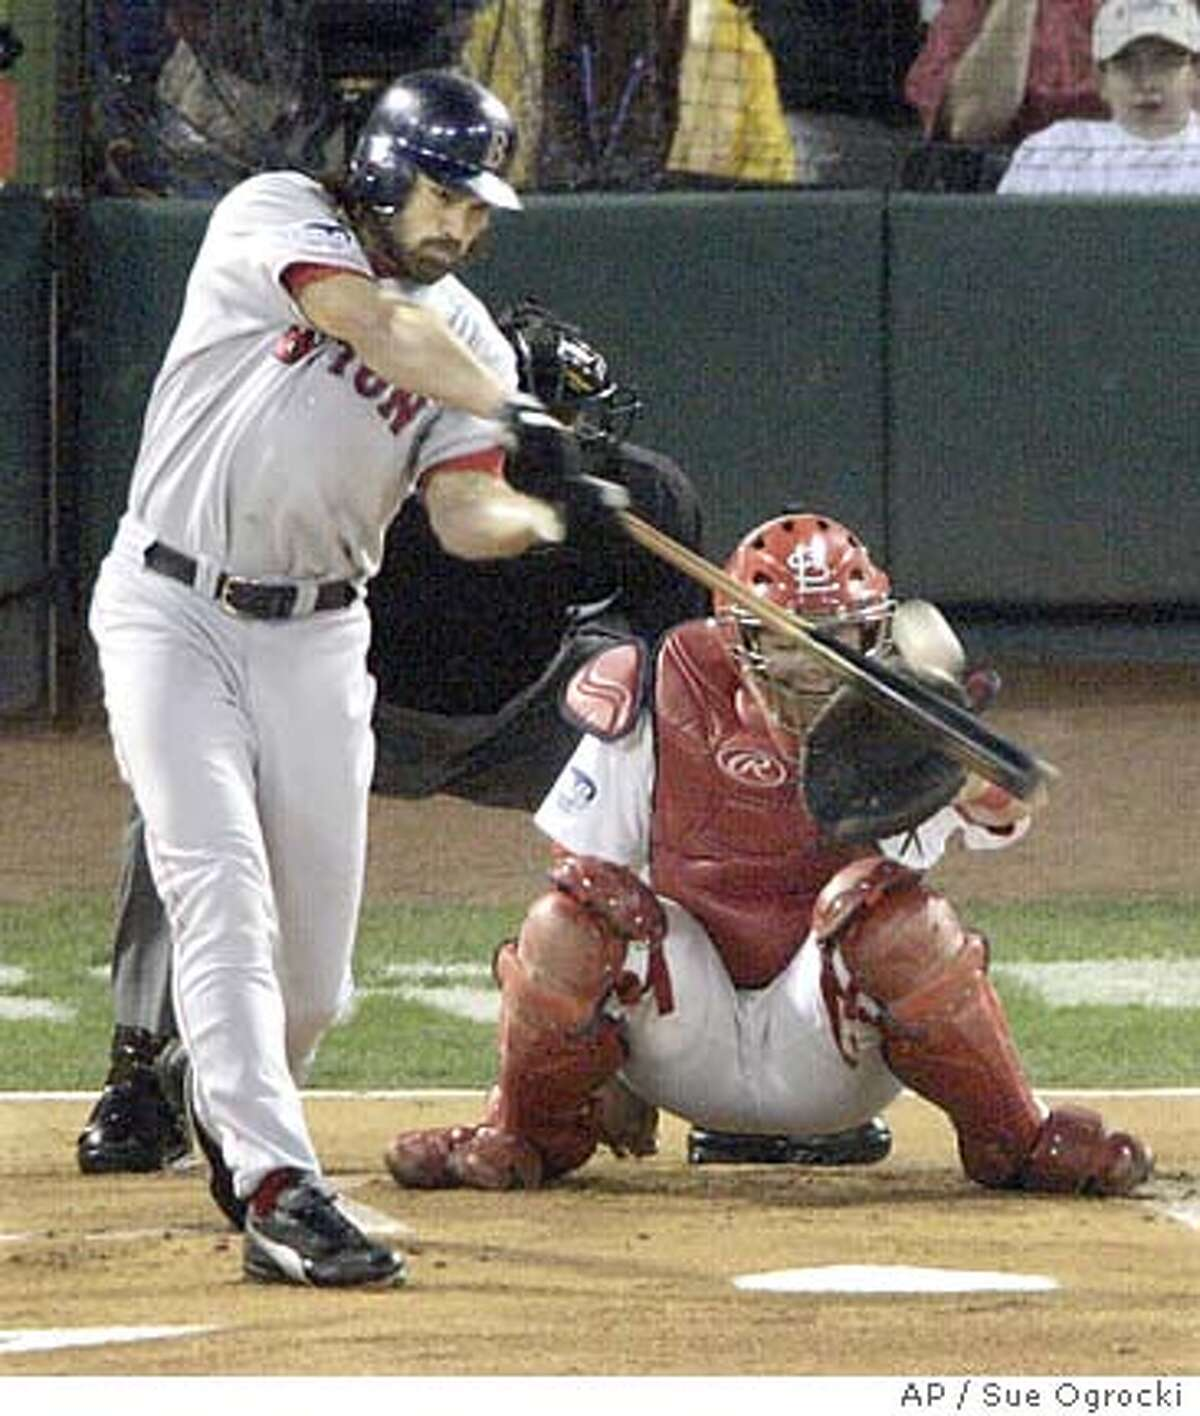 Boston Red Sox's Johnny Damon hits a solo home run in his first at bat in the first inning on a pitch from St. Louis Cardinals pitcher Jason Marquis in Game 4 of the World Series at Busch Stadium in St. Louis, Wednesday, Oct. 27, 2004. (AP Photo/Sue Ogrocki)